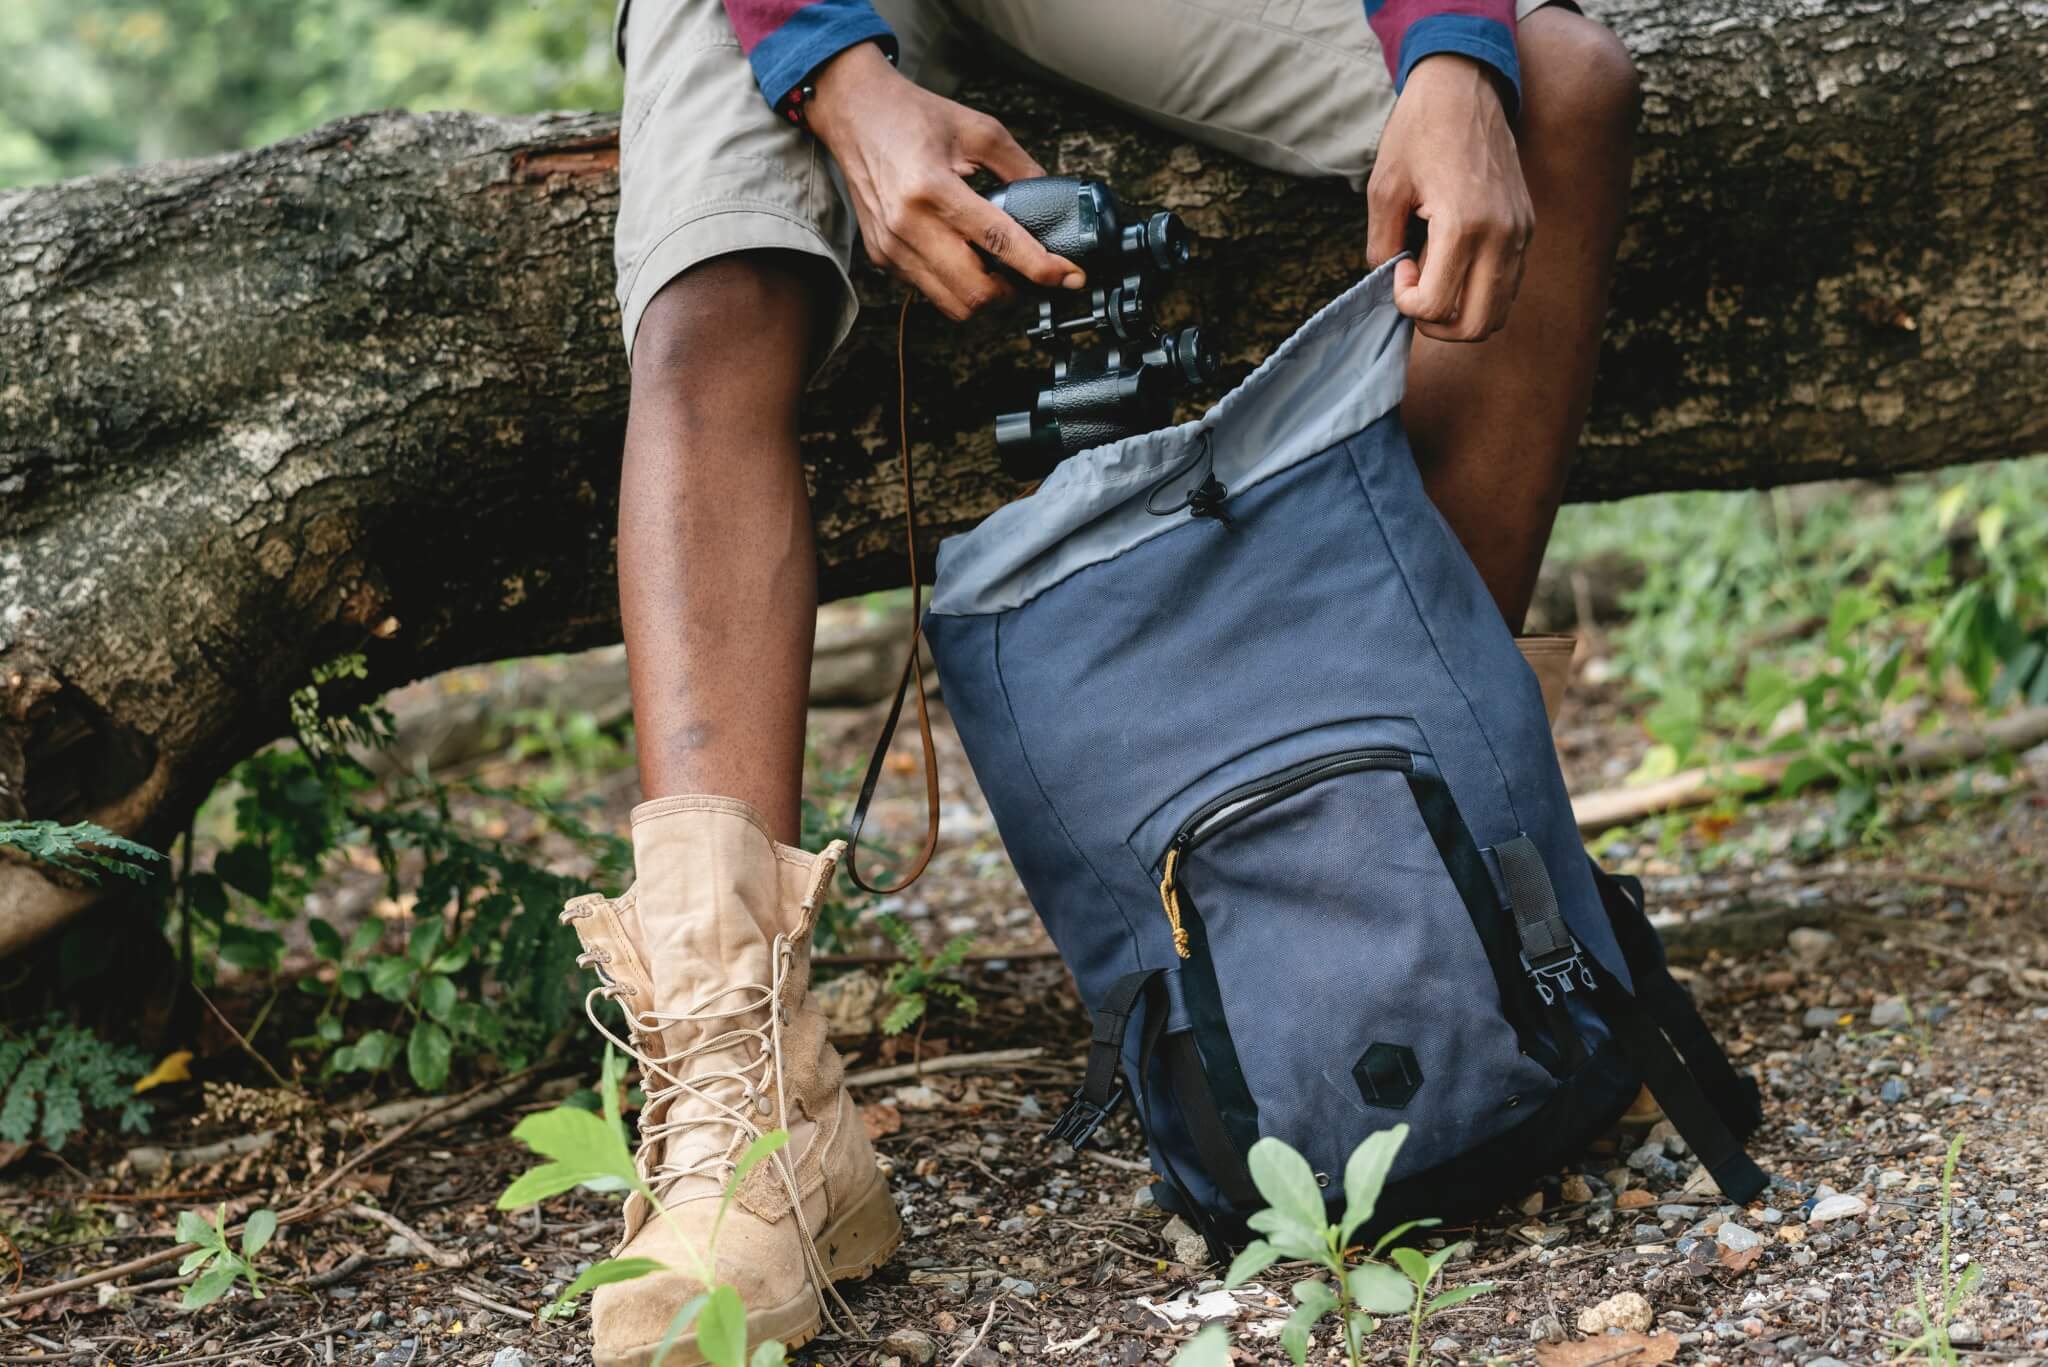 A man pulling a camera out of a backpack.